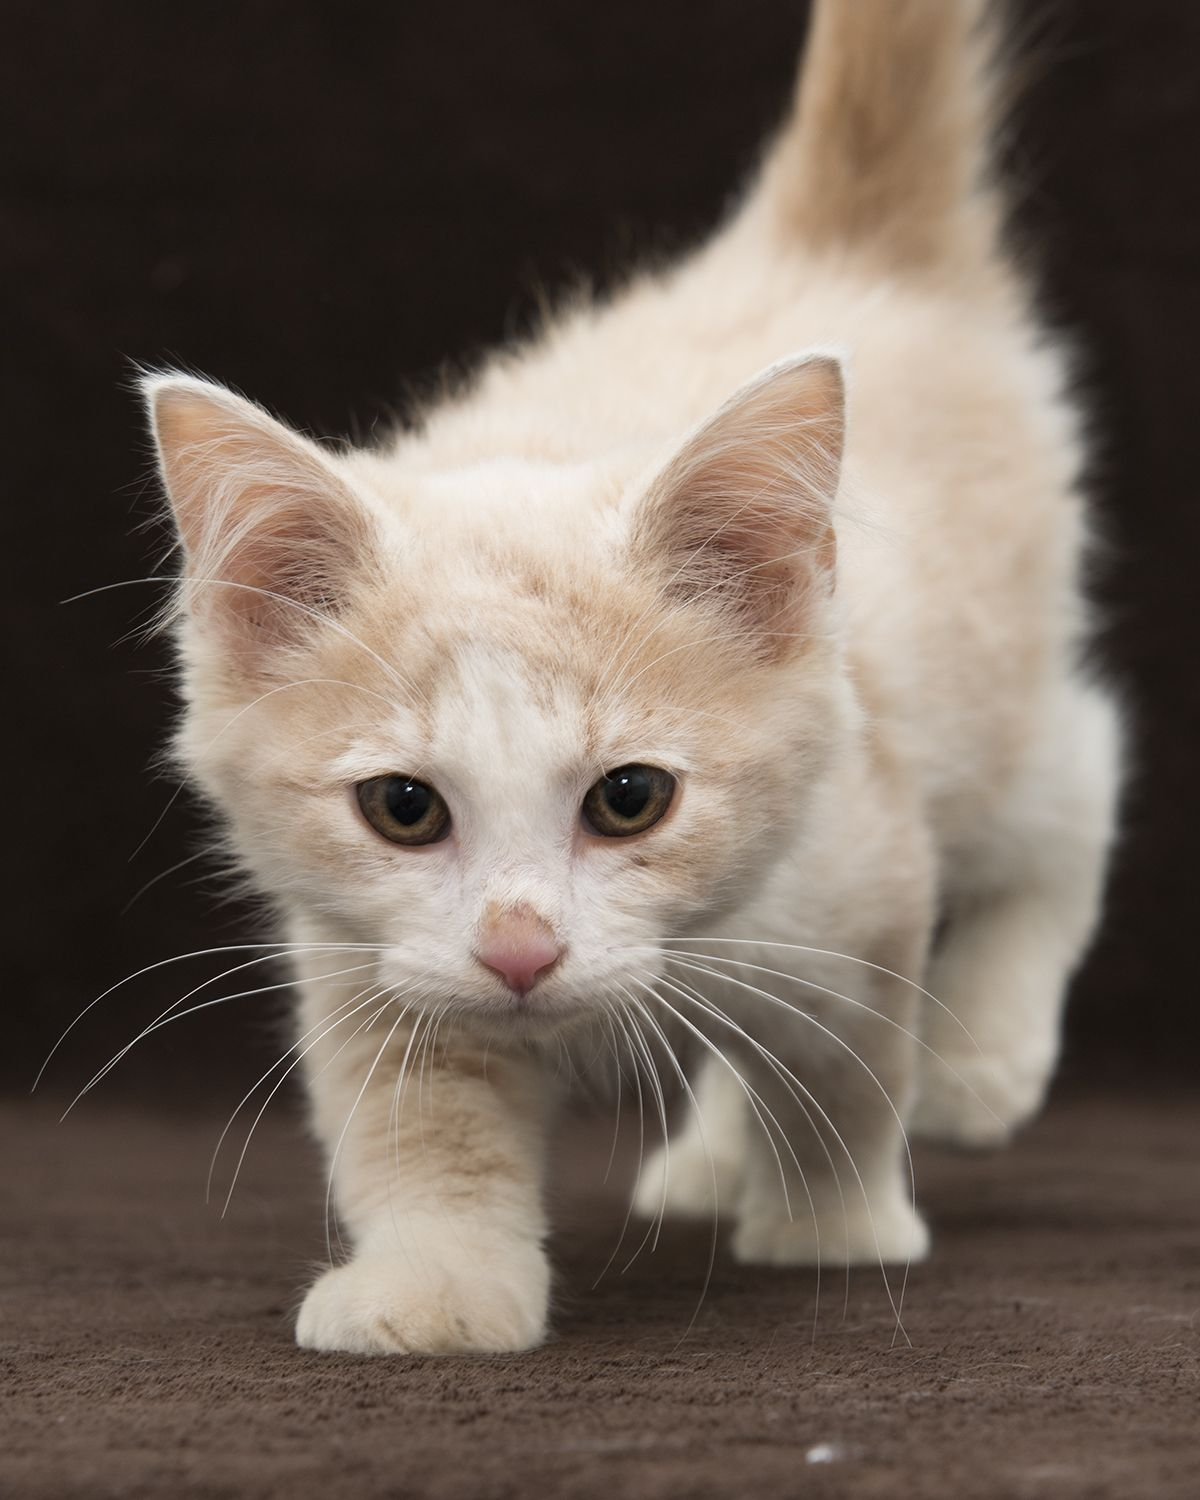 Muffie May Sound Like A Snooty Name But This Gal Is Anything But That Let S Find Her A Foreverhome 100kchallenge Cat Adoption Animals Puppy Adoption